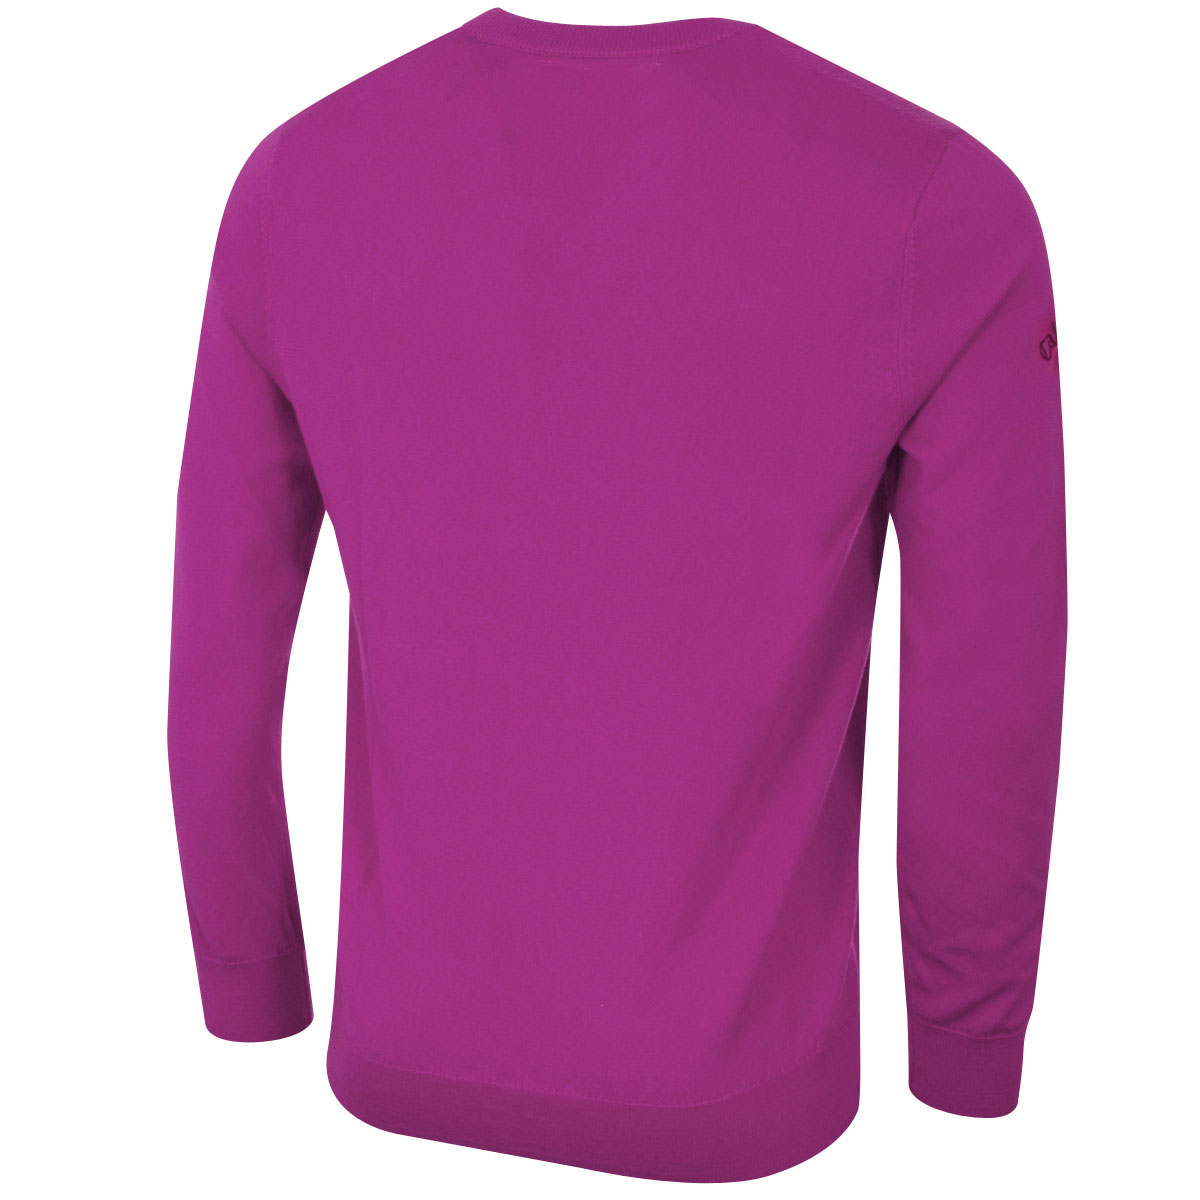 Callaway-Golf-Mens-Ribbed-V-Neck-Merino-Opti-Therm-Sweater-Jumper-64-OFF-RRP thumbnail 6